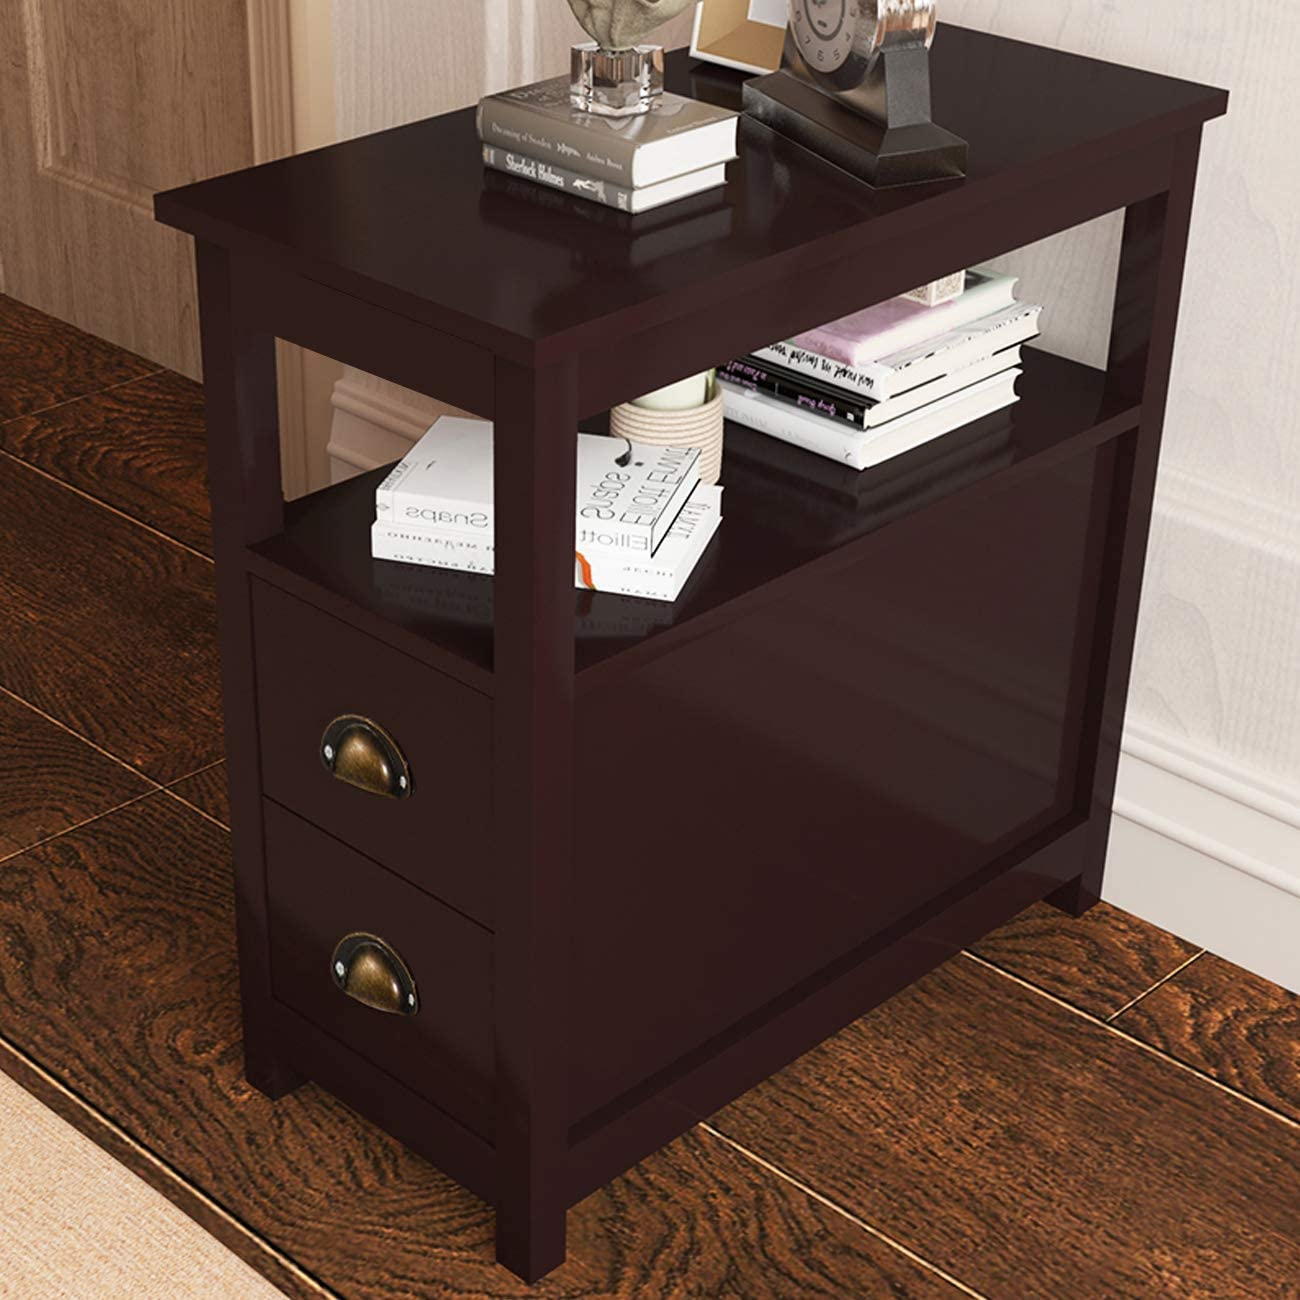 SPCYS-ST003-CA Brown SogesPower Bedside Table End Table Night Stand Nightstand Side Table Coffee Table Sofa Table Console Table with 2 Storage Drawers /& Shelf for Bedroom